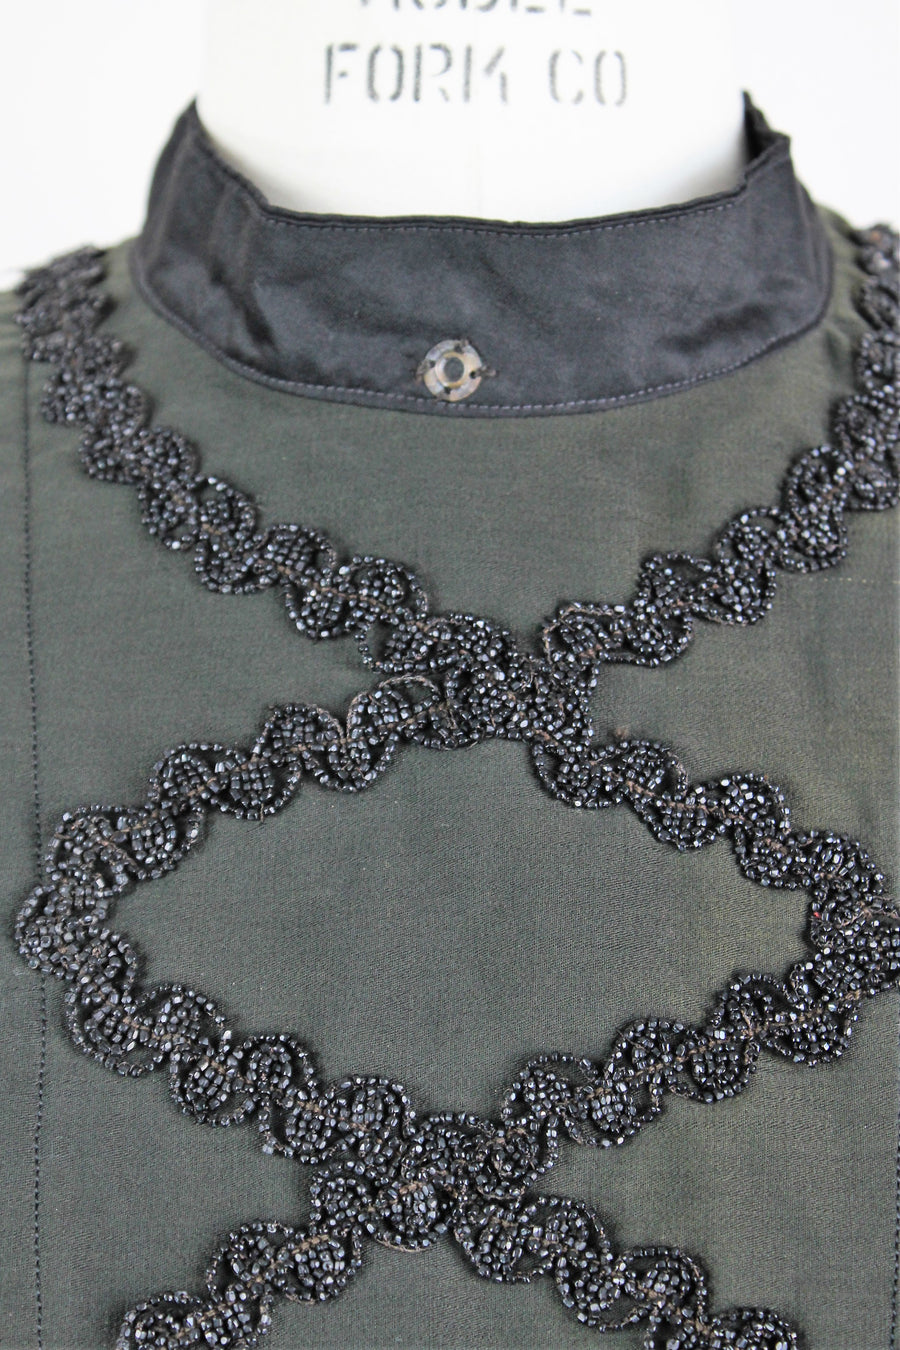 Antique 1890s/1900s Black Mourning Blouse With Jet Beads